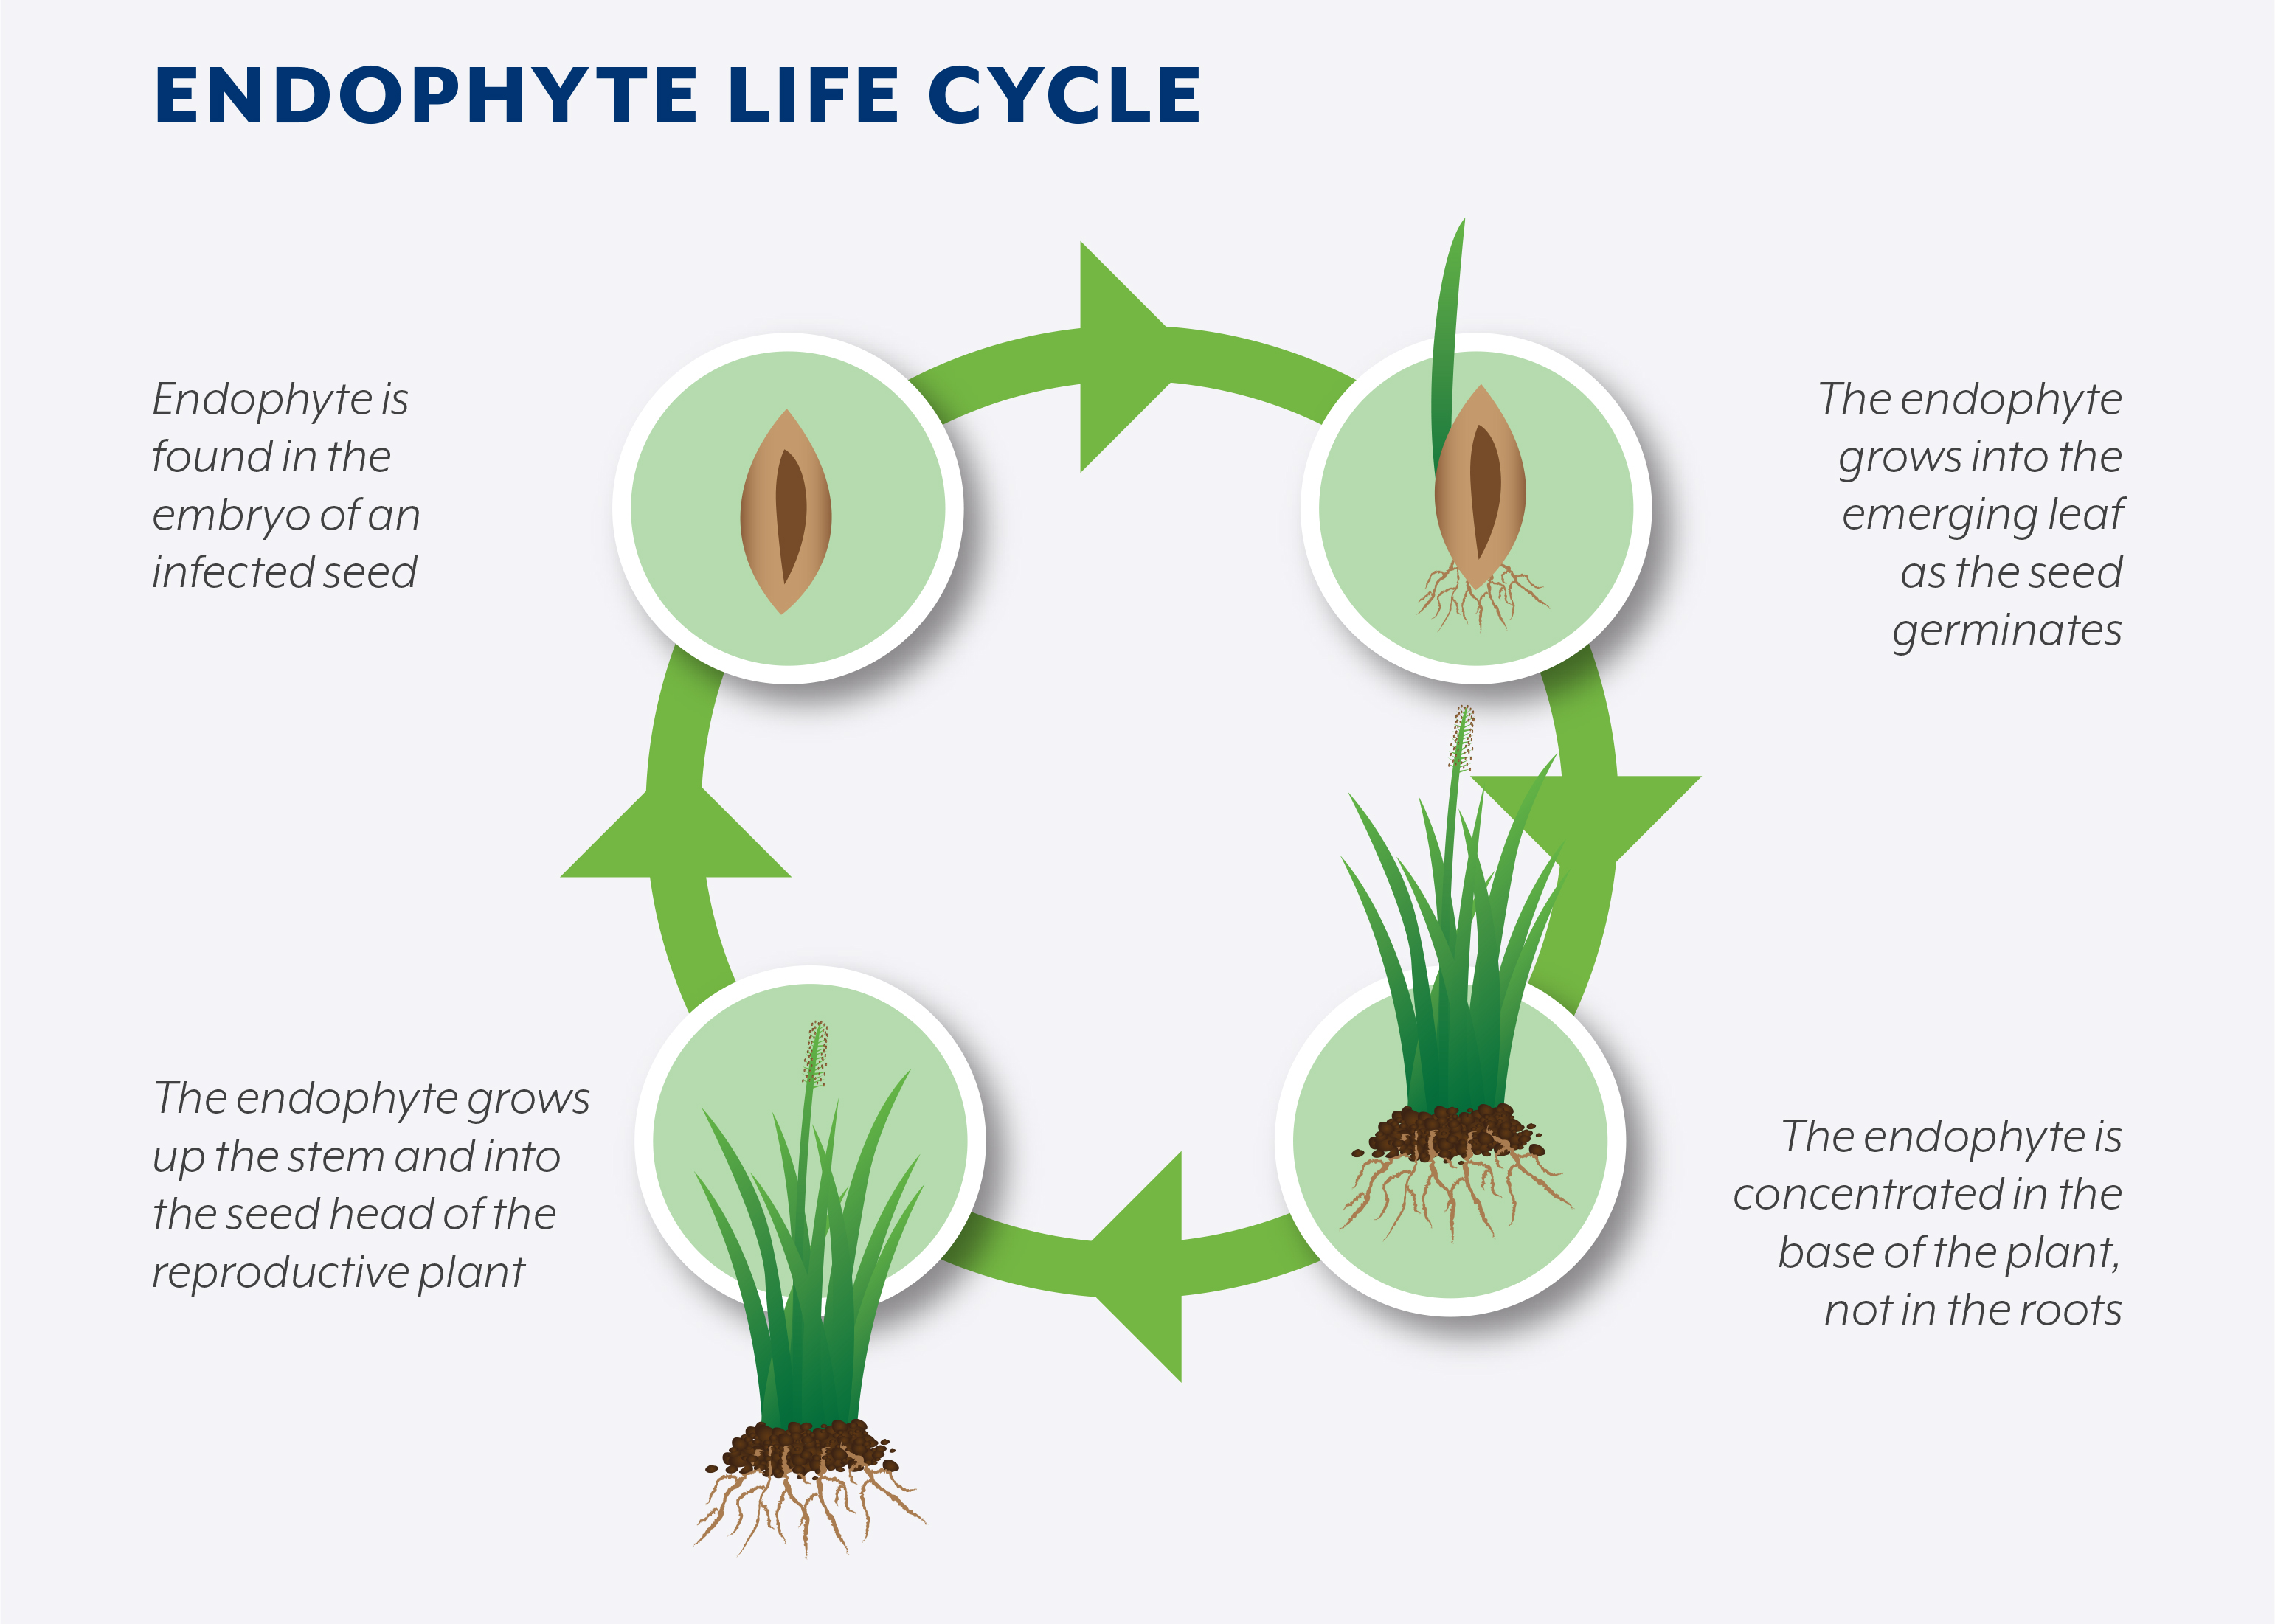 Endophyte Life Cycle